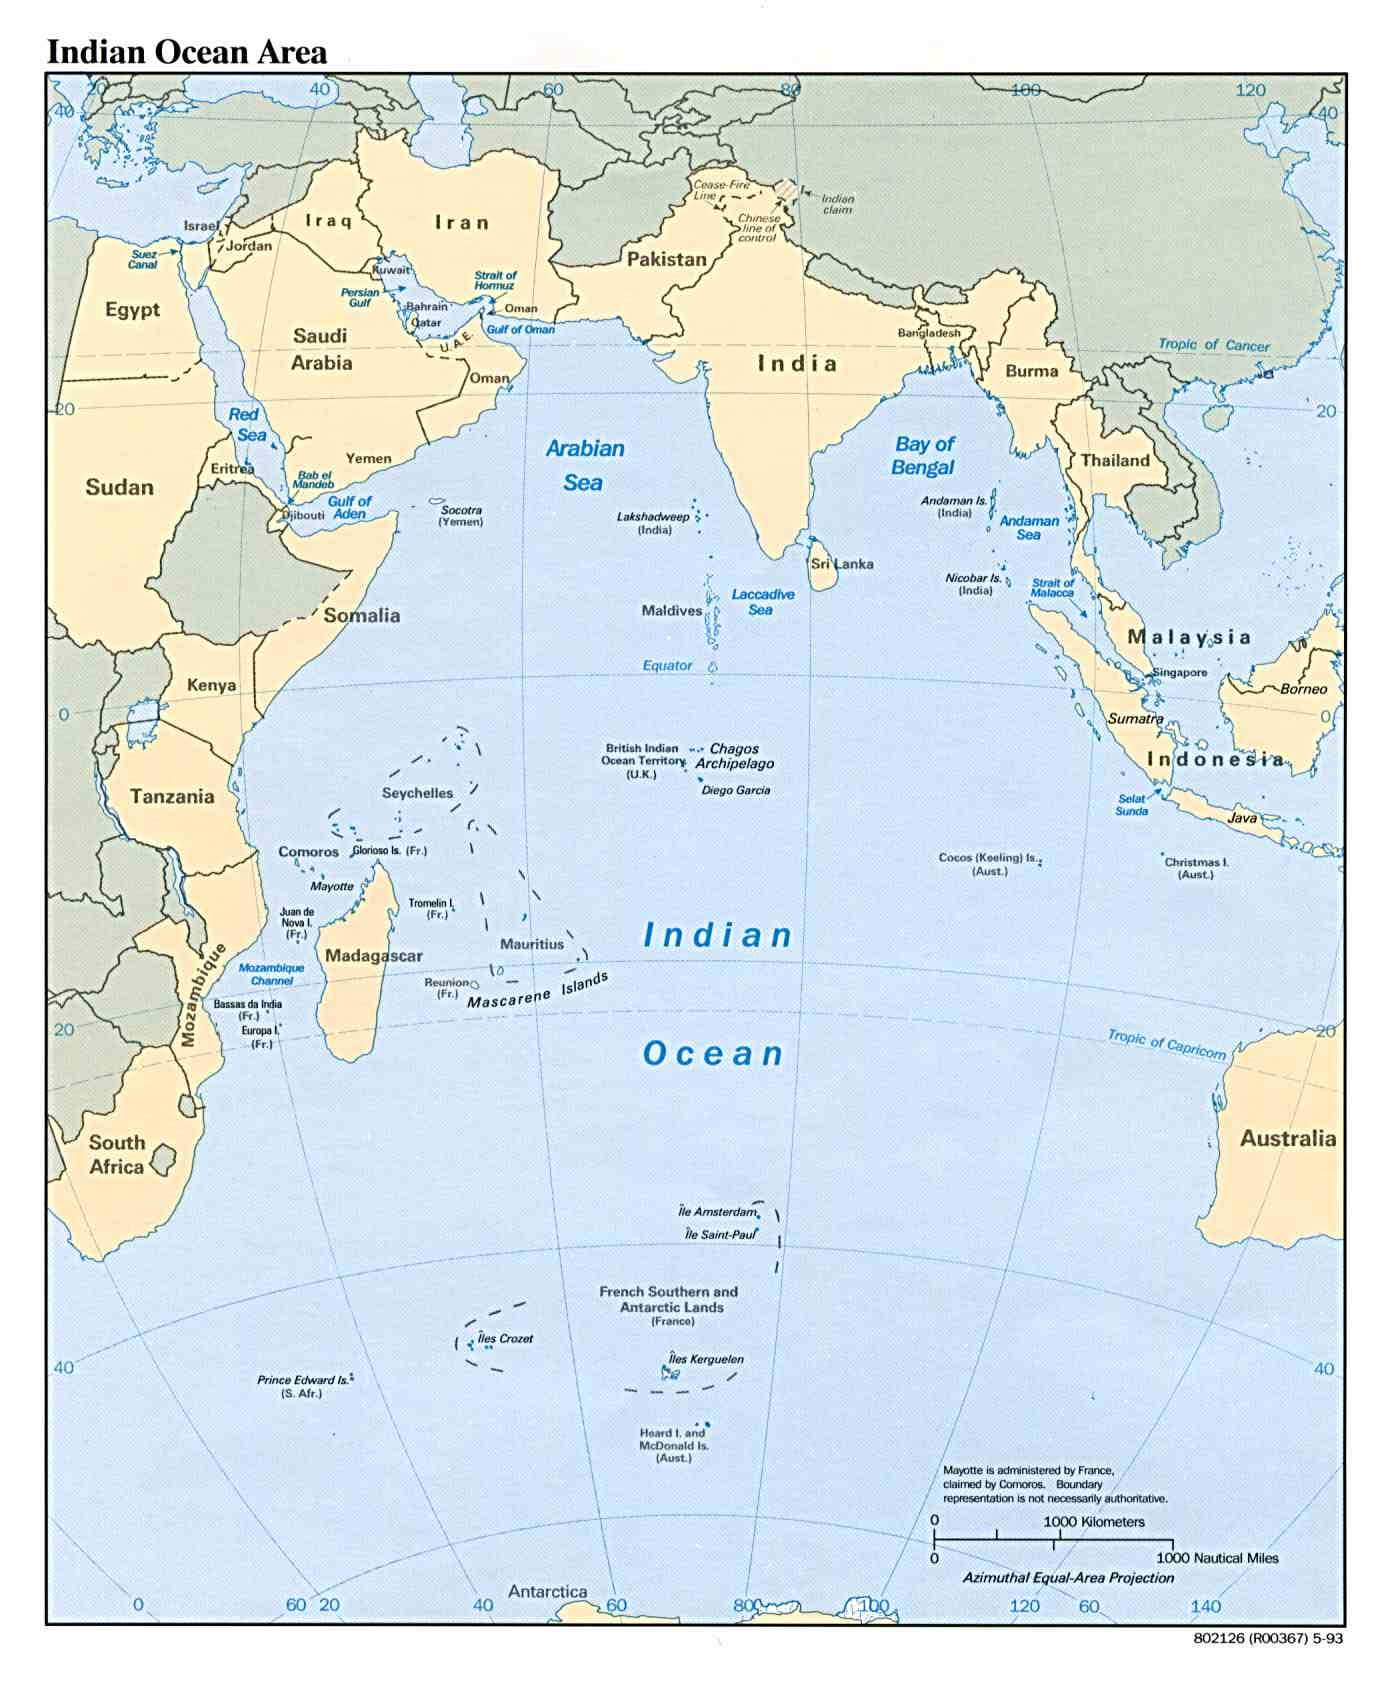 The Indian Ocean Maritime Boundary